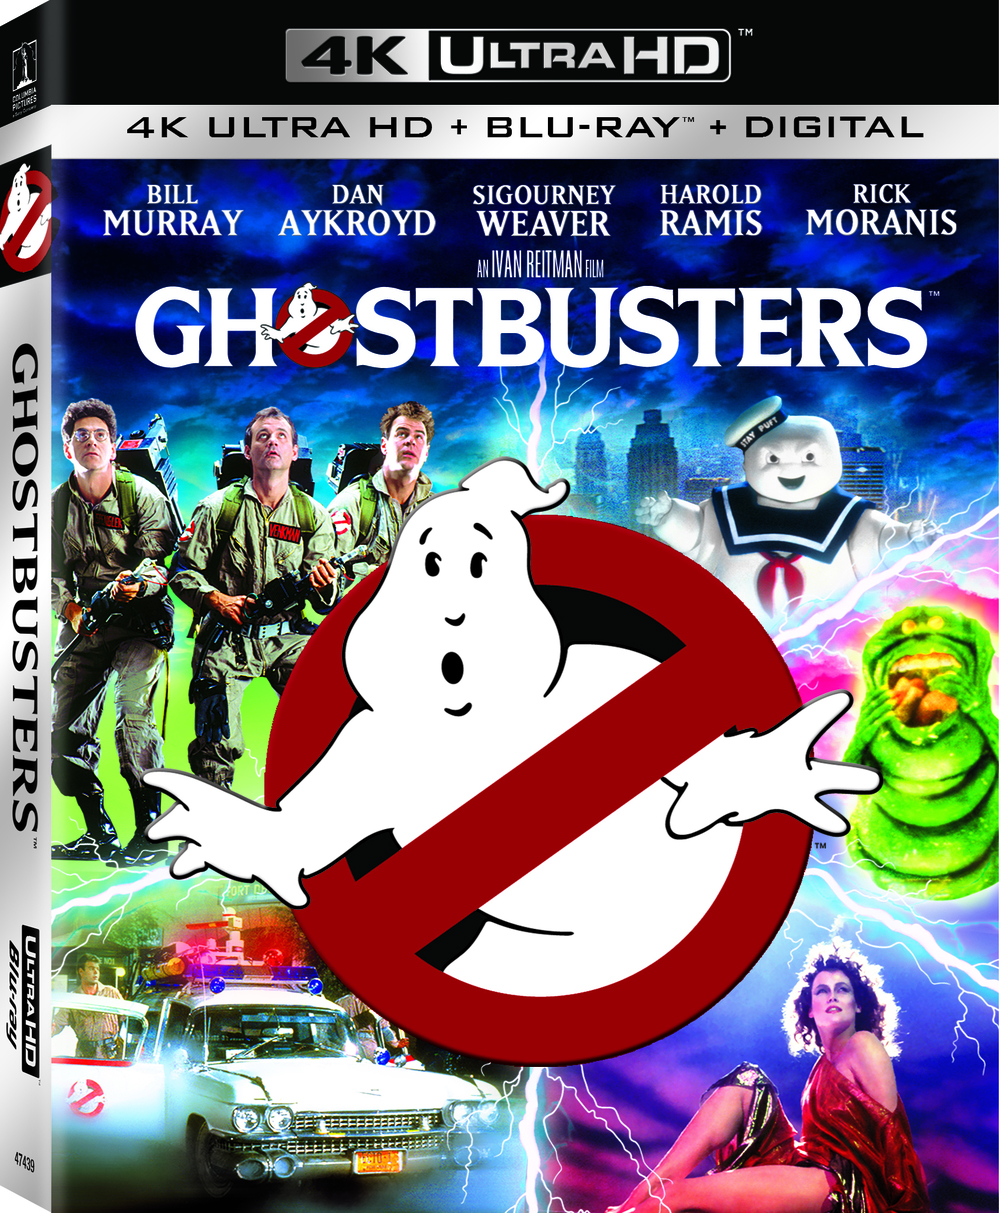 Original Ghostbusters Films Coming to UHD! But What Does